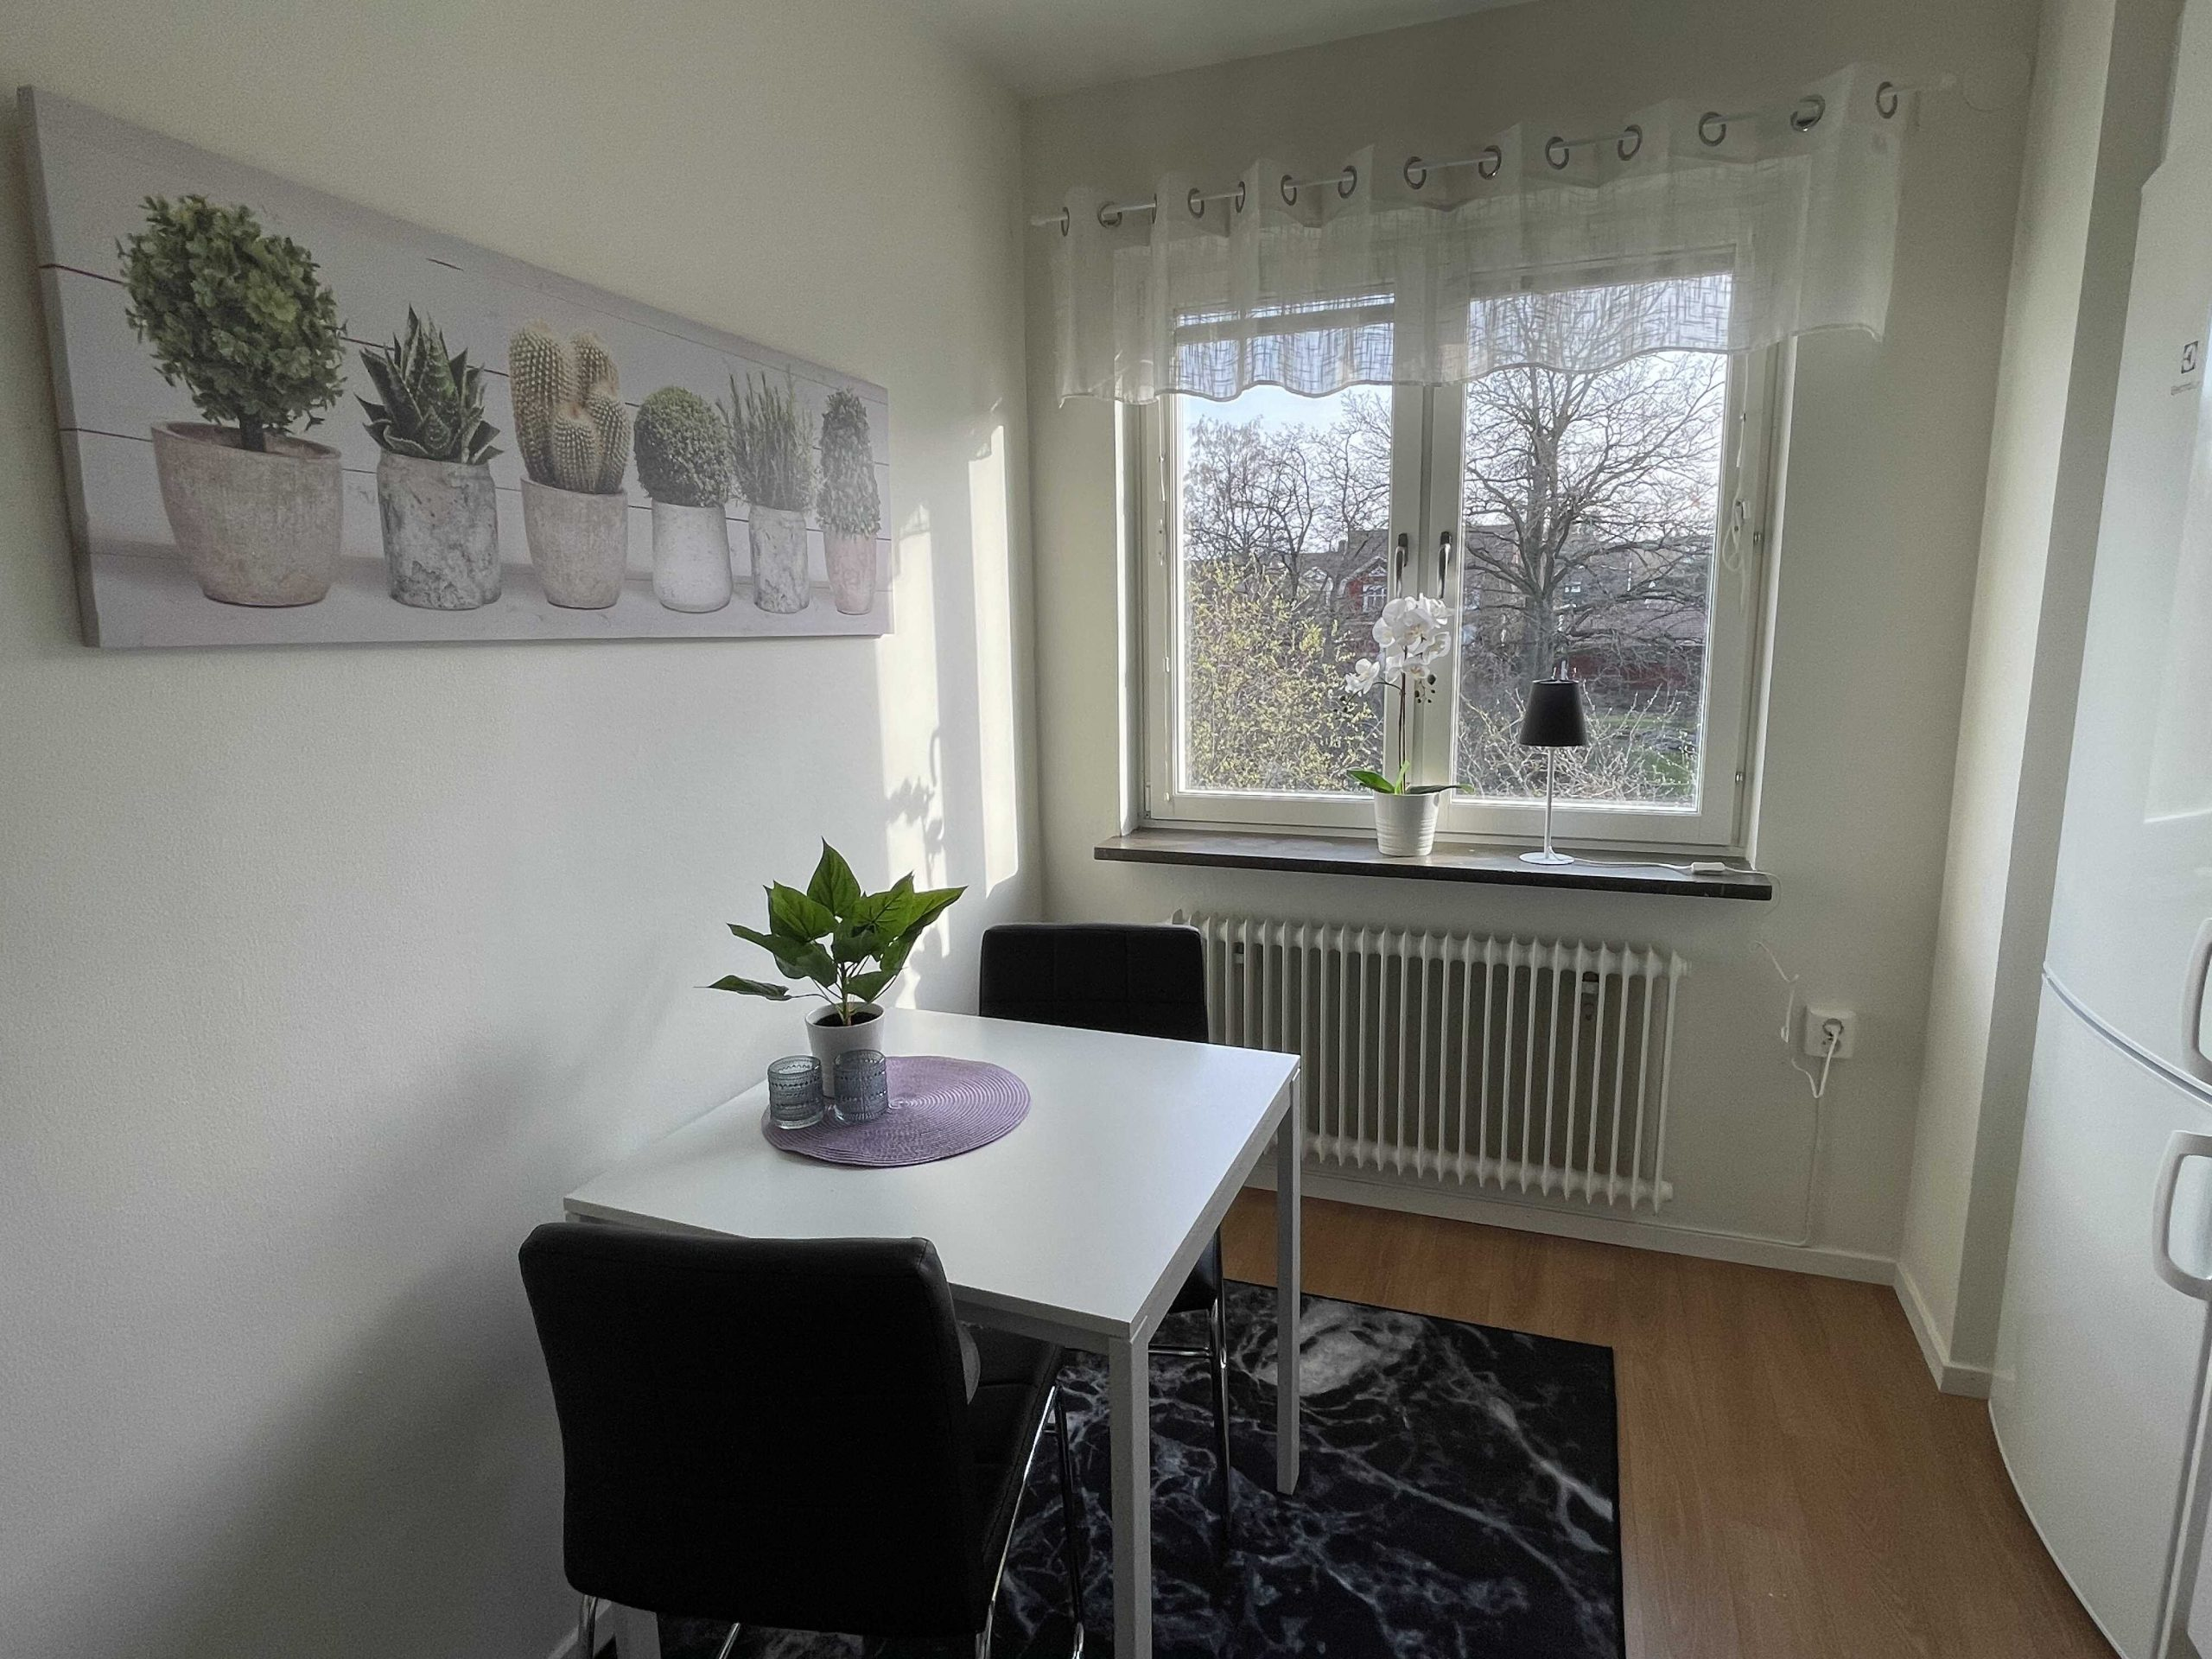 Serviced apartment, business accommodation, long stay, stay easy